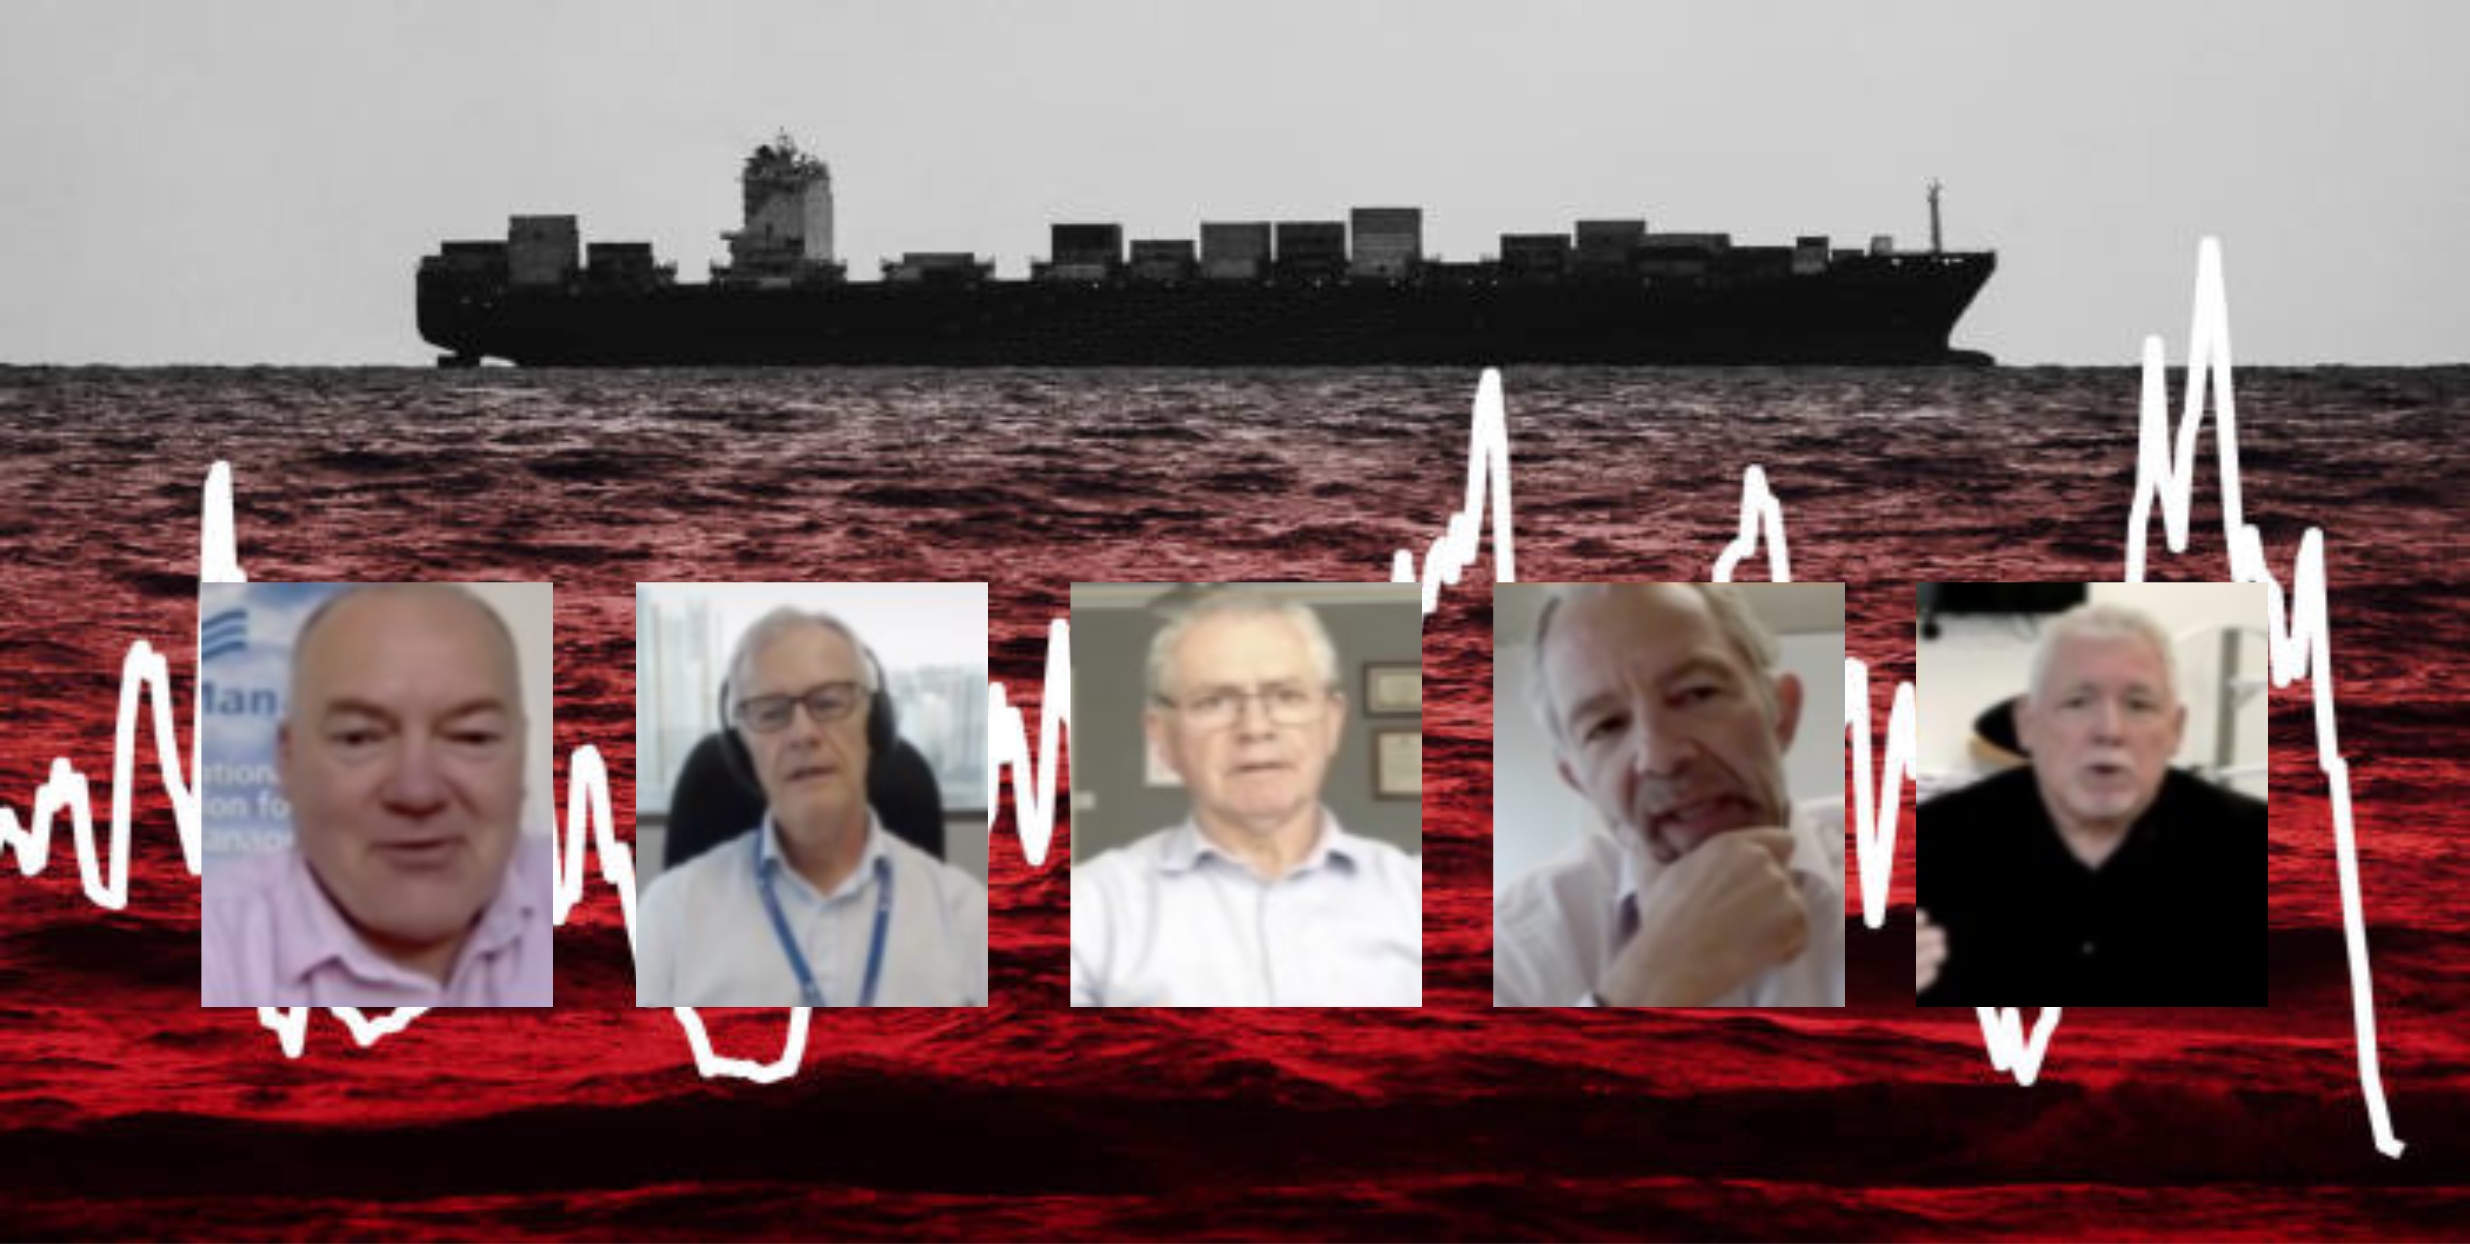 Five Top Names in shipmanagement discuss the future of the industry post-coronavirus